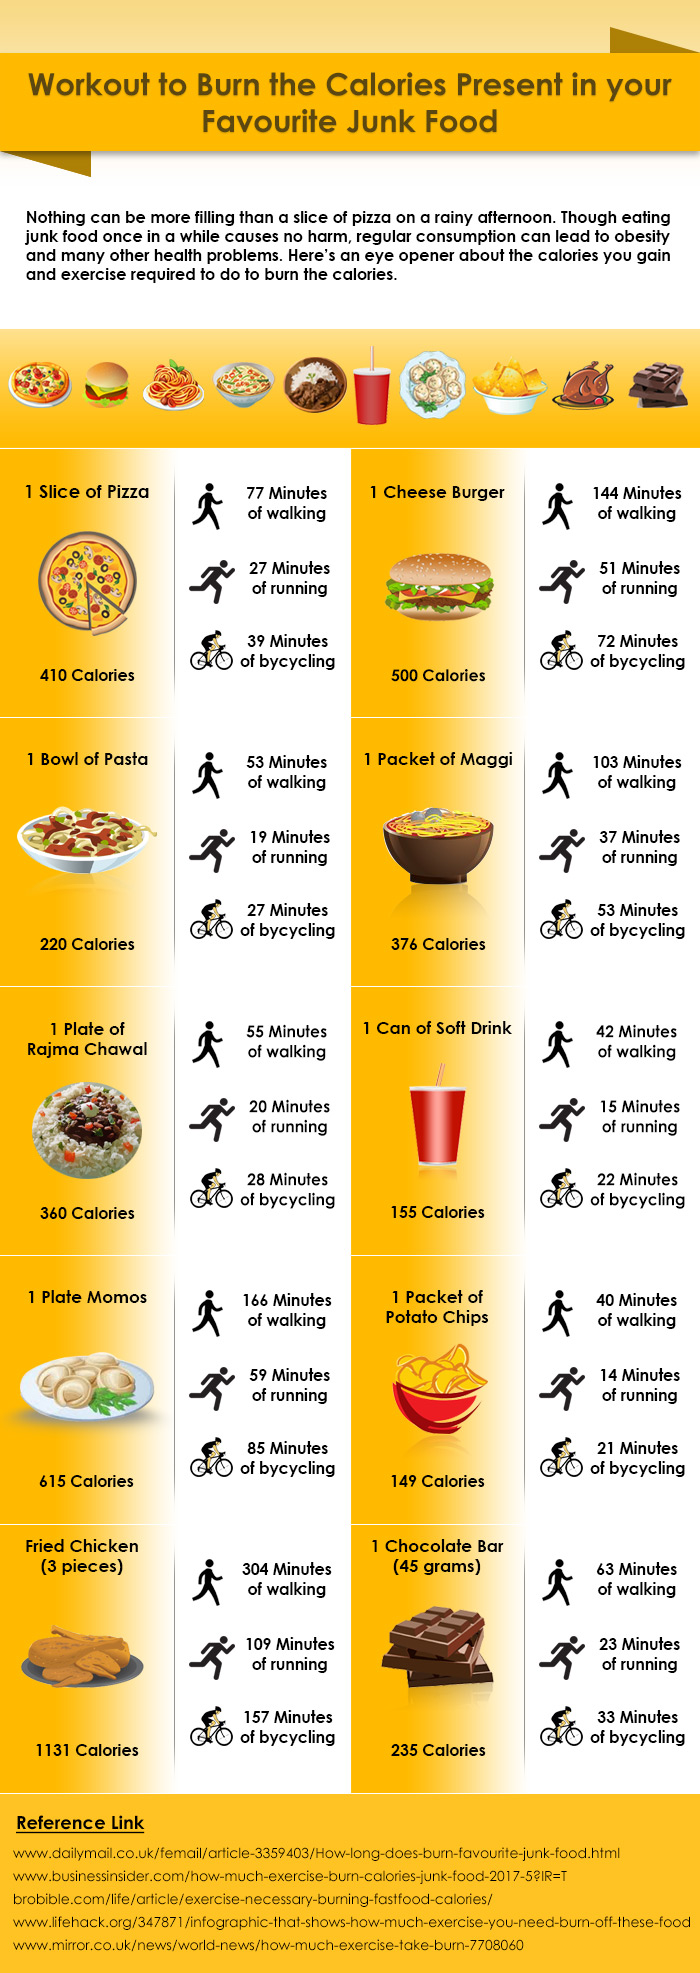 Calories and Workout - Kent Blog